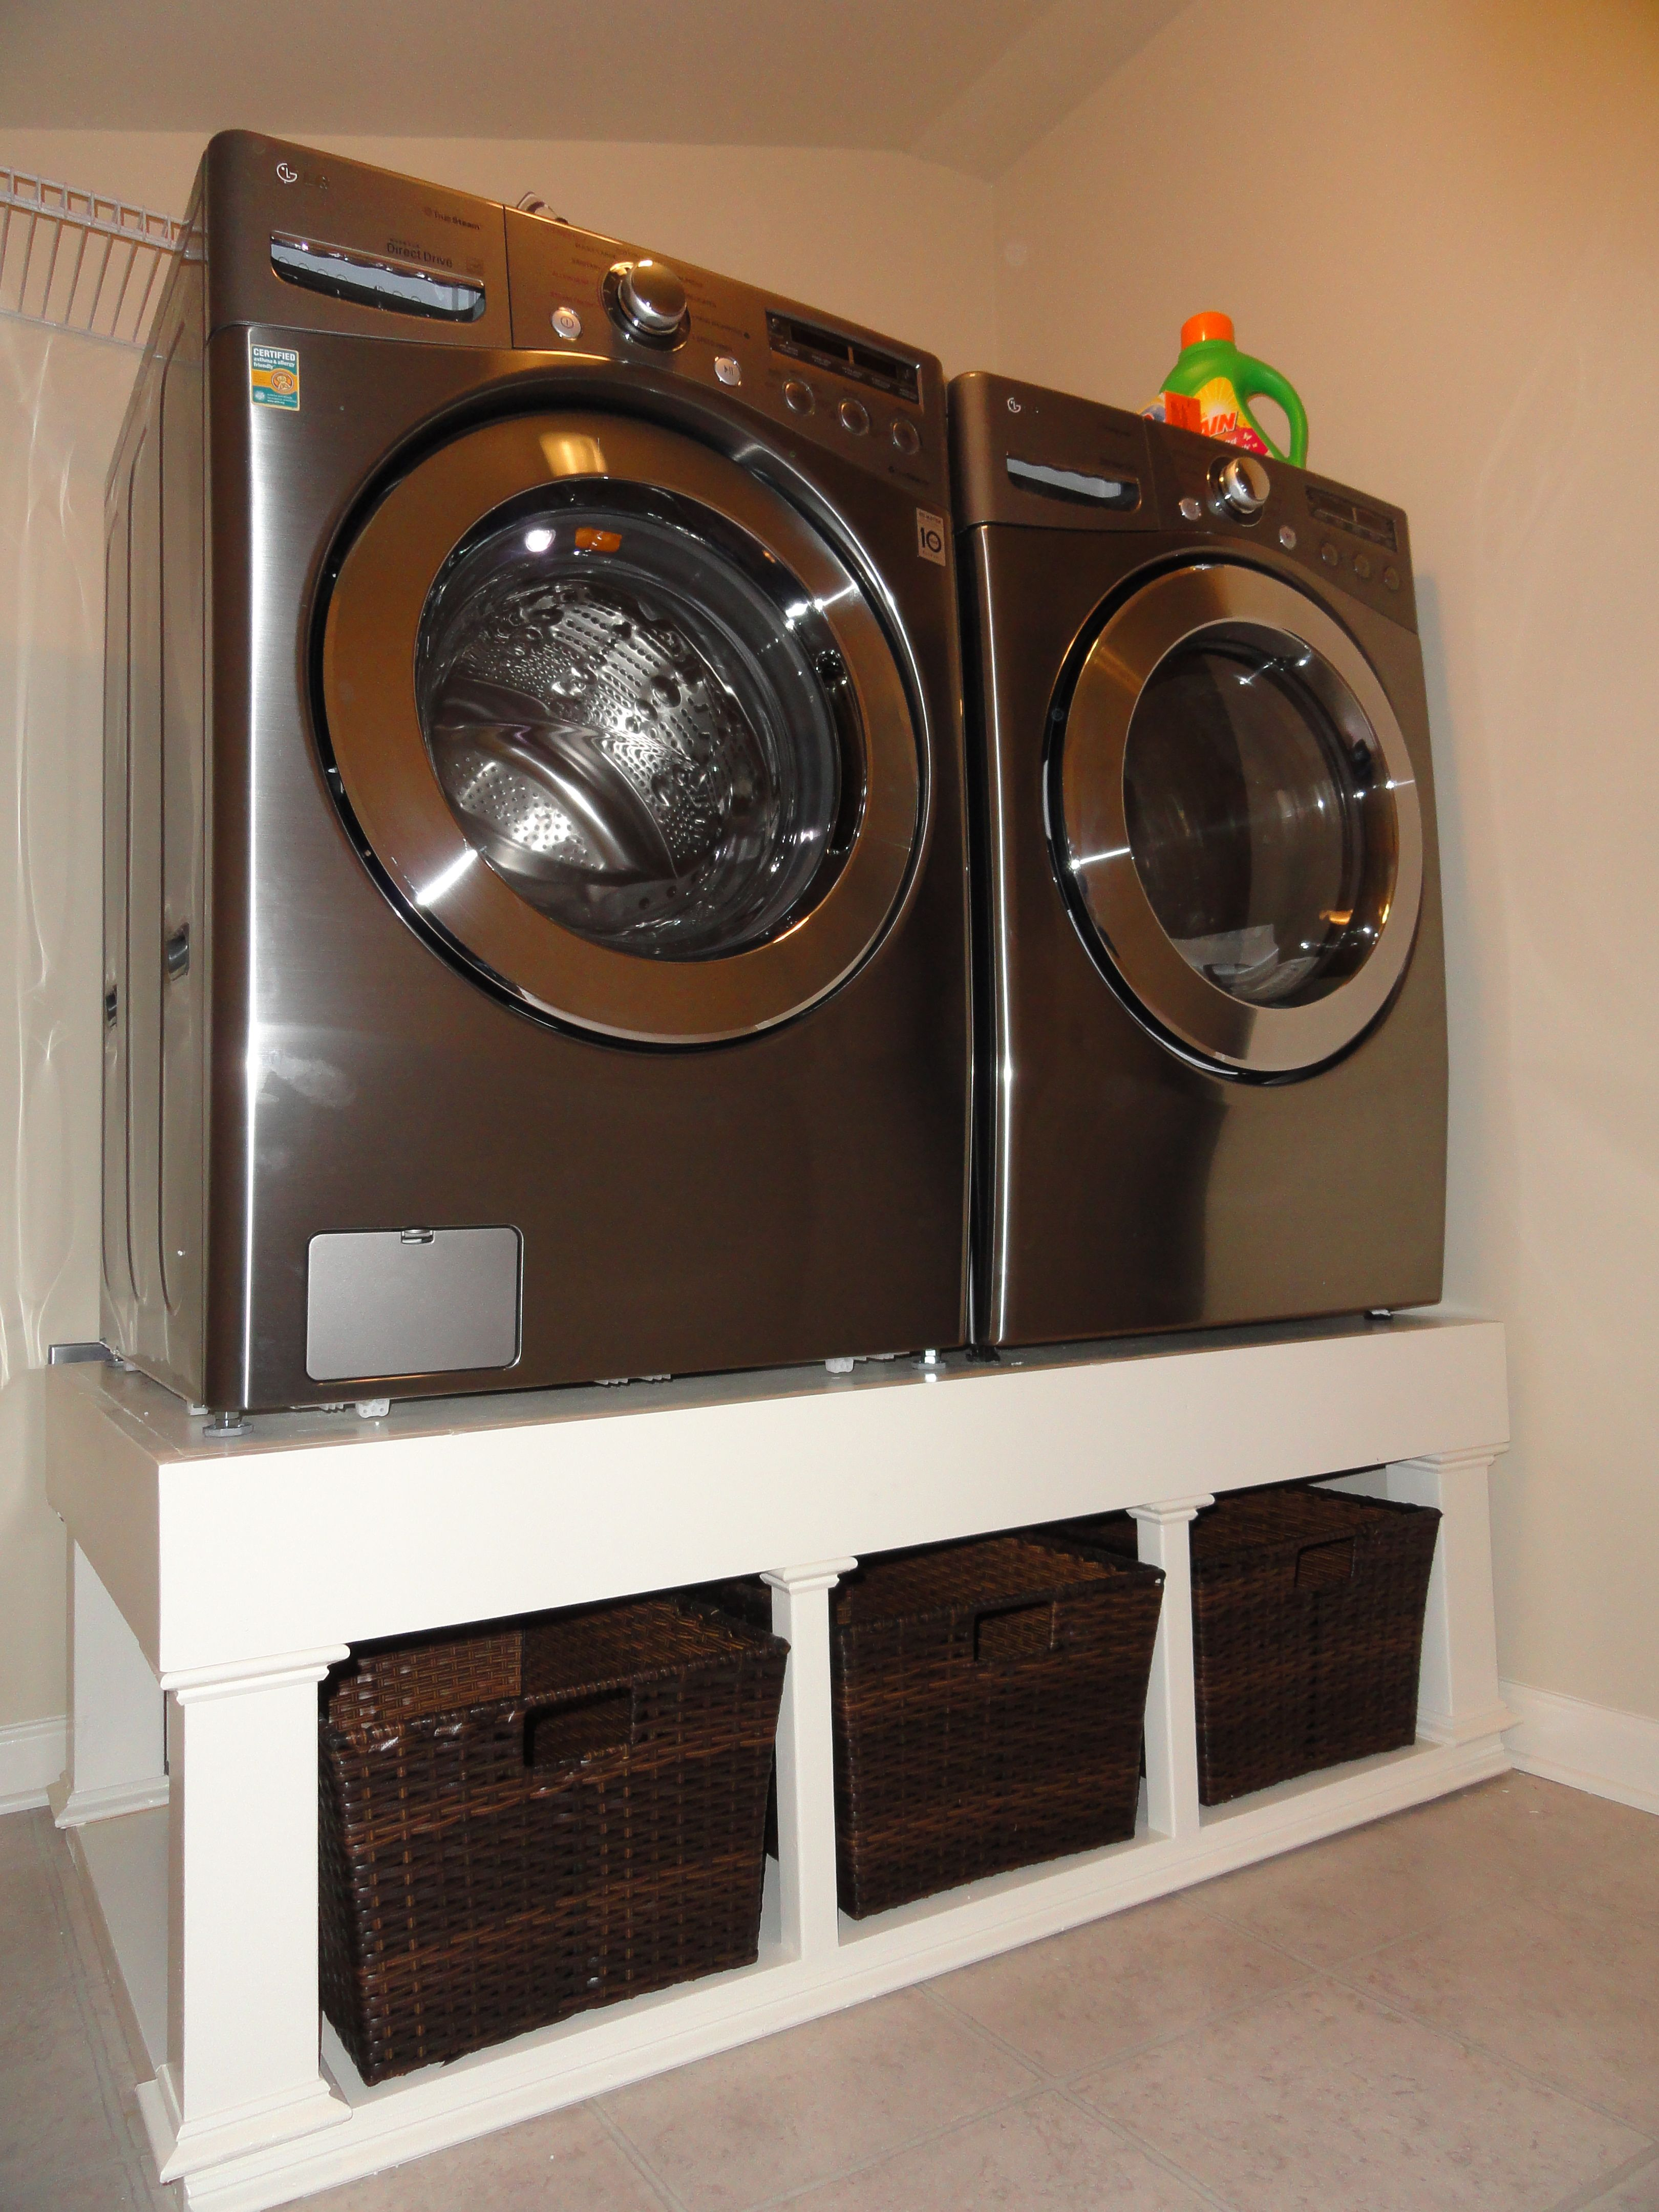 universal laundry pedestal exclusive are dryer x pedestals and of photo washer